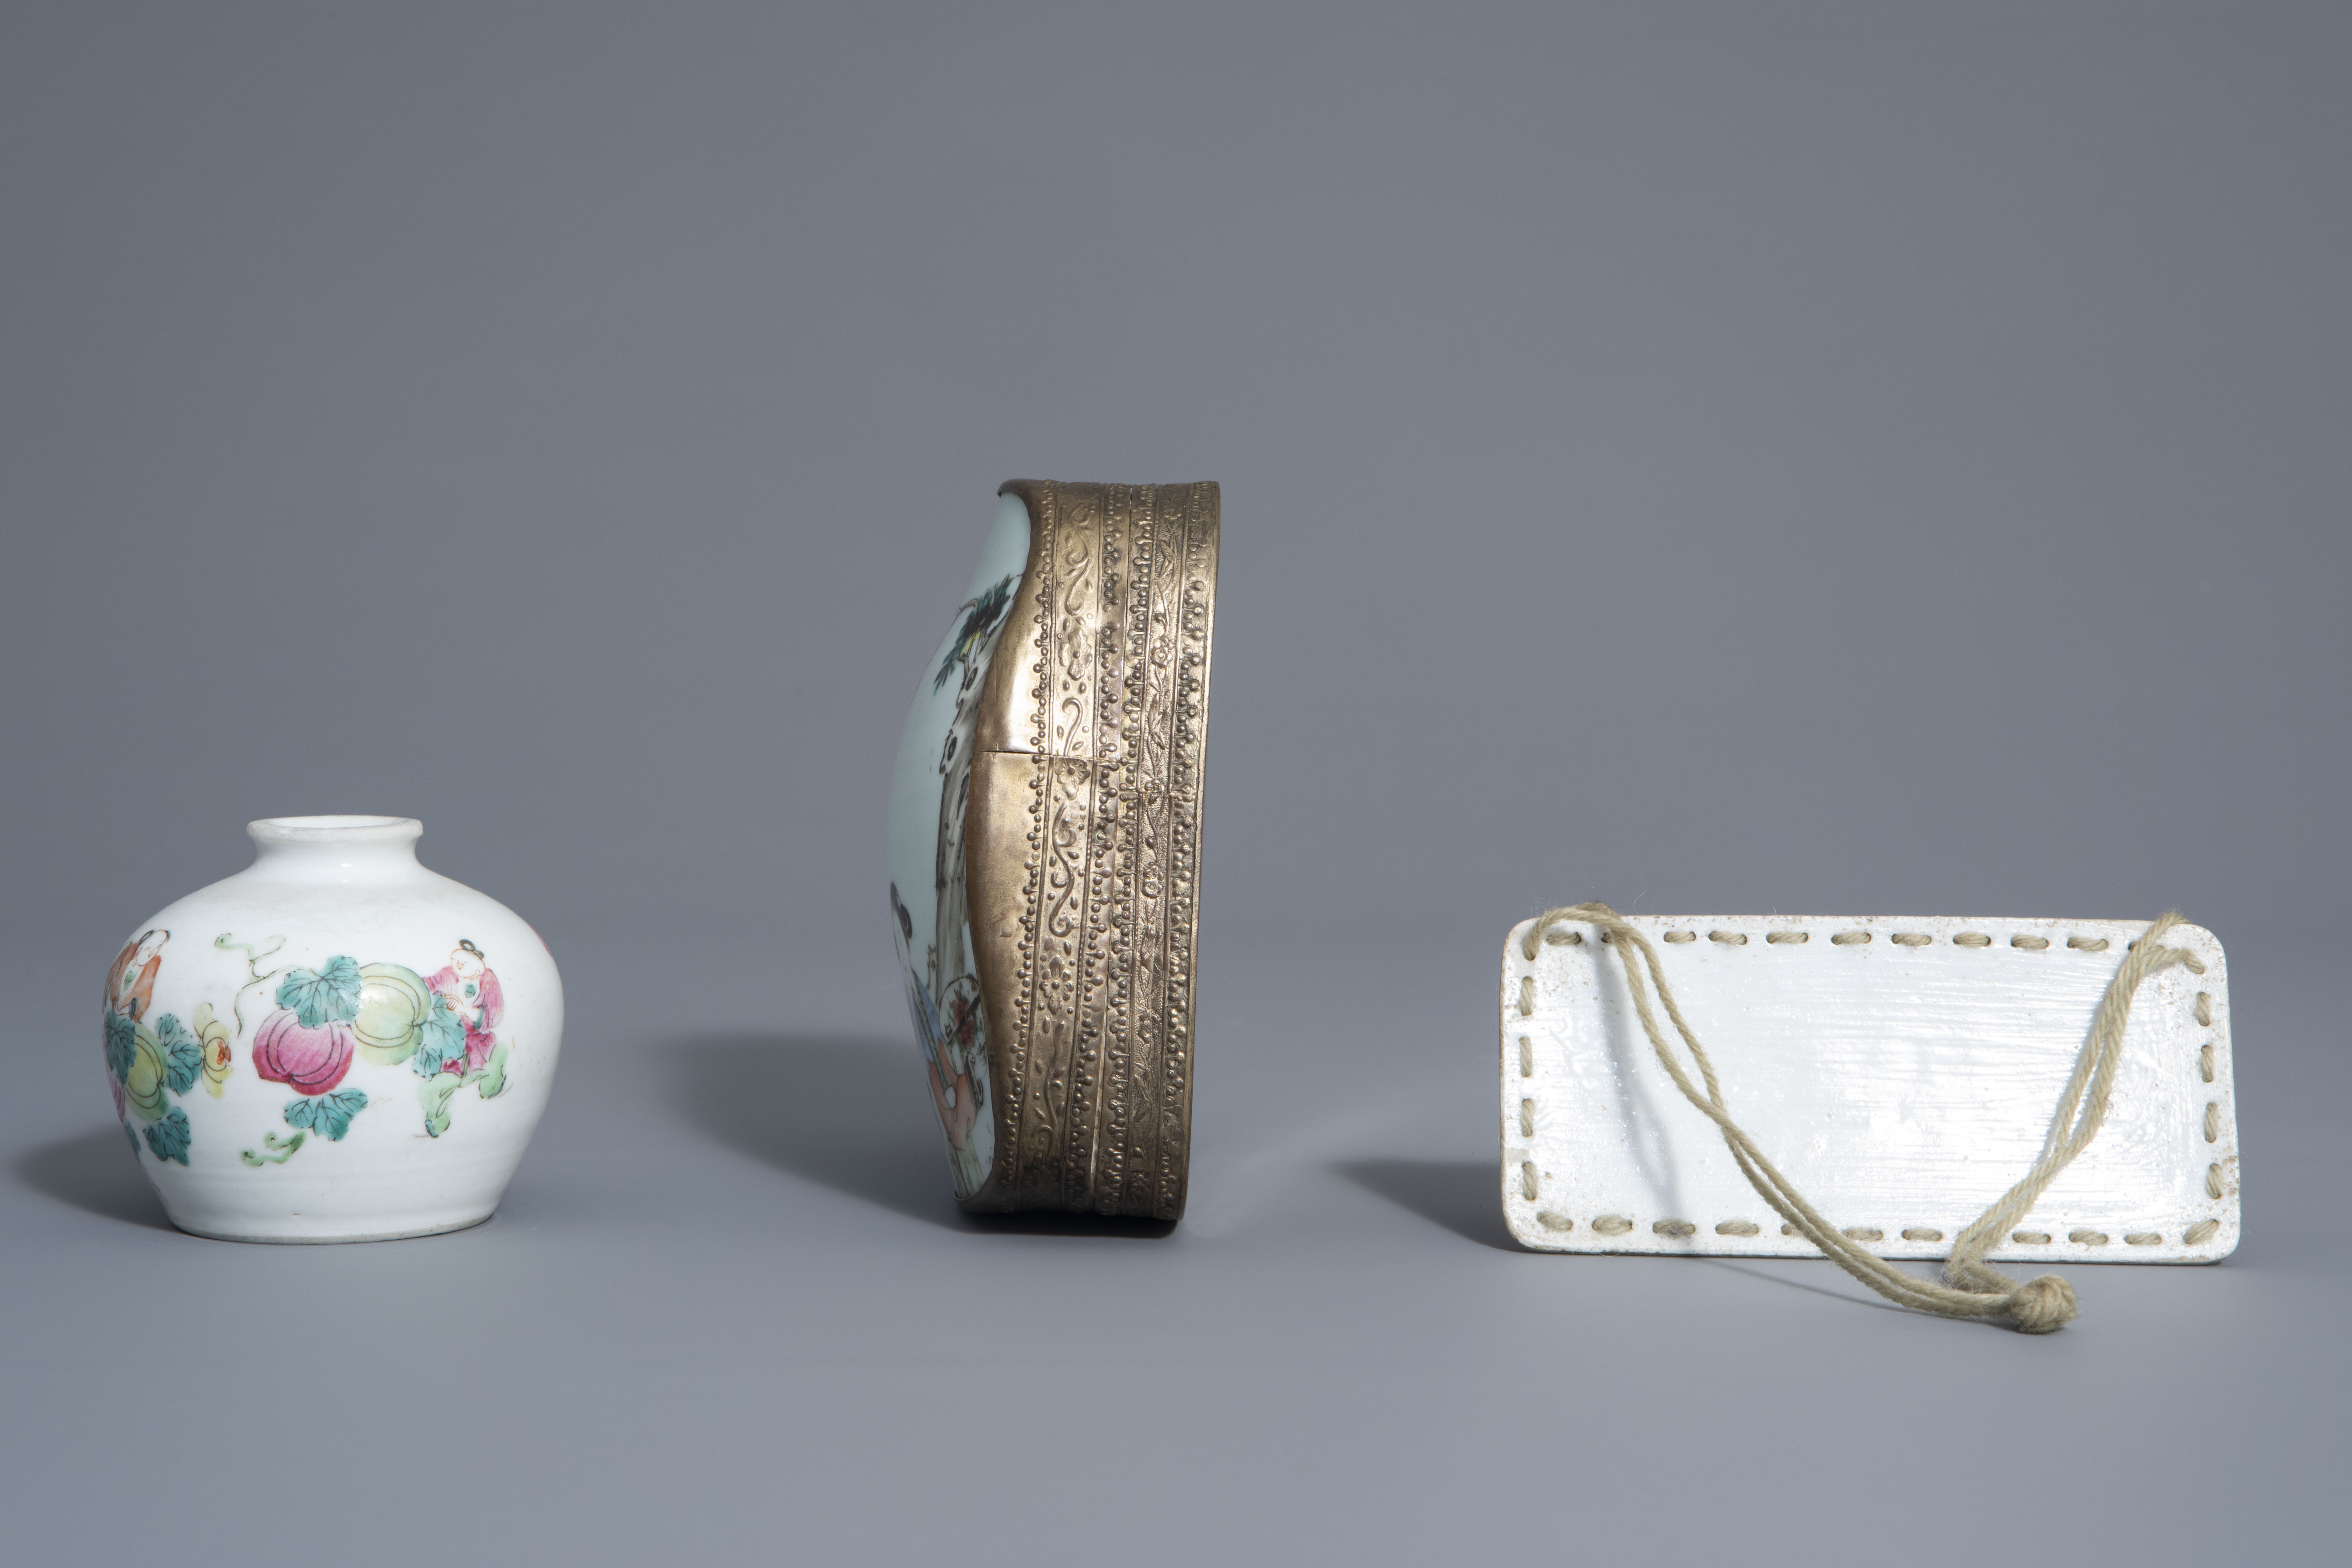 A varied collection of Chinese famille rose and blue and white porcelain, 19th/20th C. - Image 11 of 14